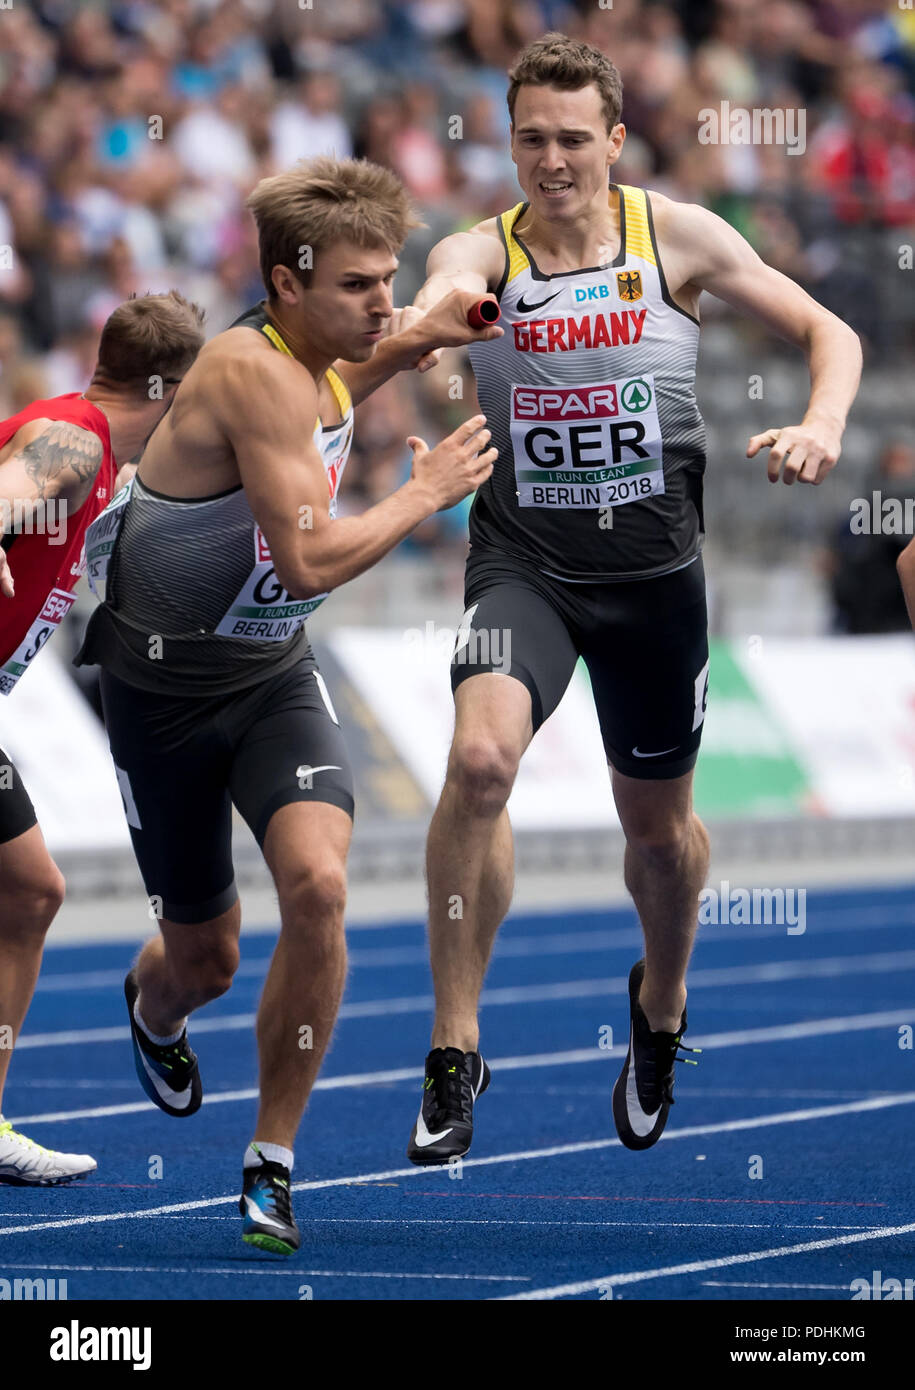 Berlin, Germany. 10th Aug, 2018. European Athletics Championships at the Olympic Stadium: 4x400 Meter Relay, Men, Round 1: Torben Junker (R) passes the baton to Fabian Dammer from Germany. Credit: Sven Hoppe/dpa/Alamy Live News - Stock Image